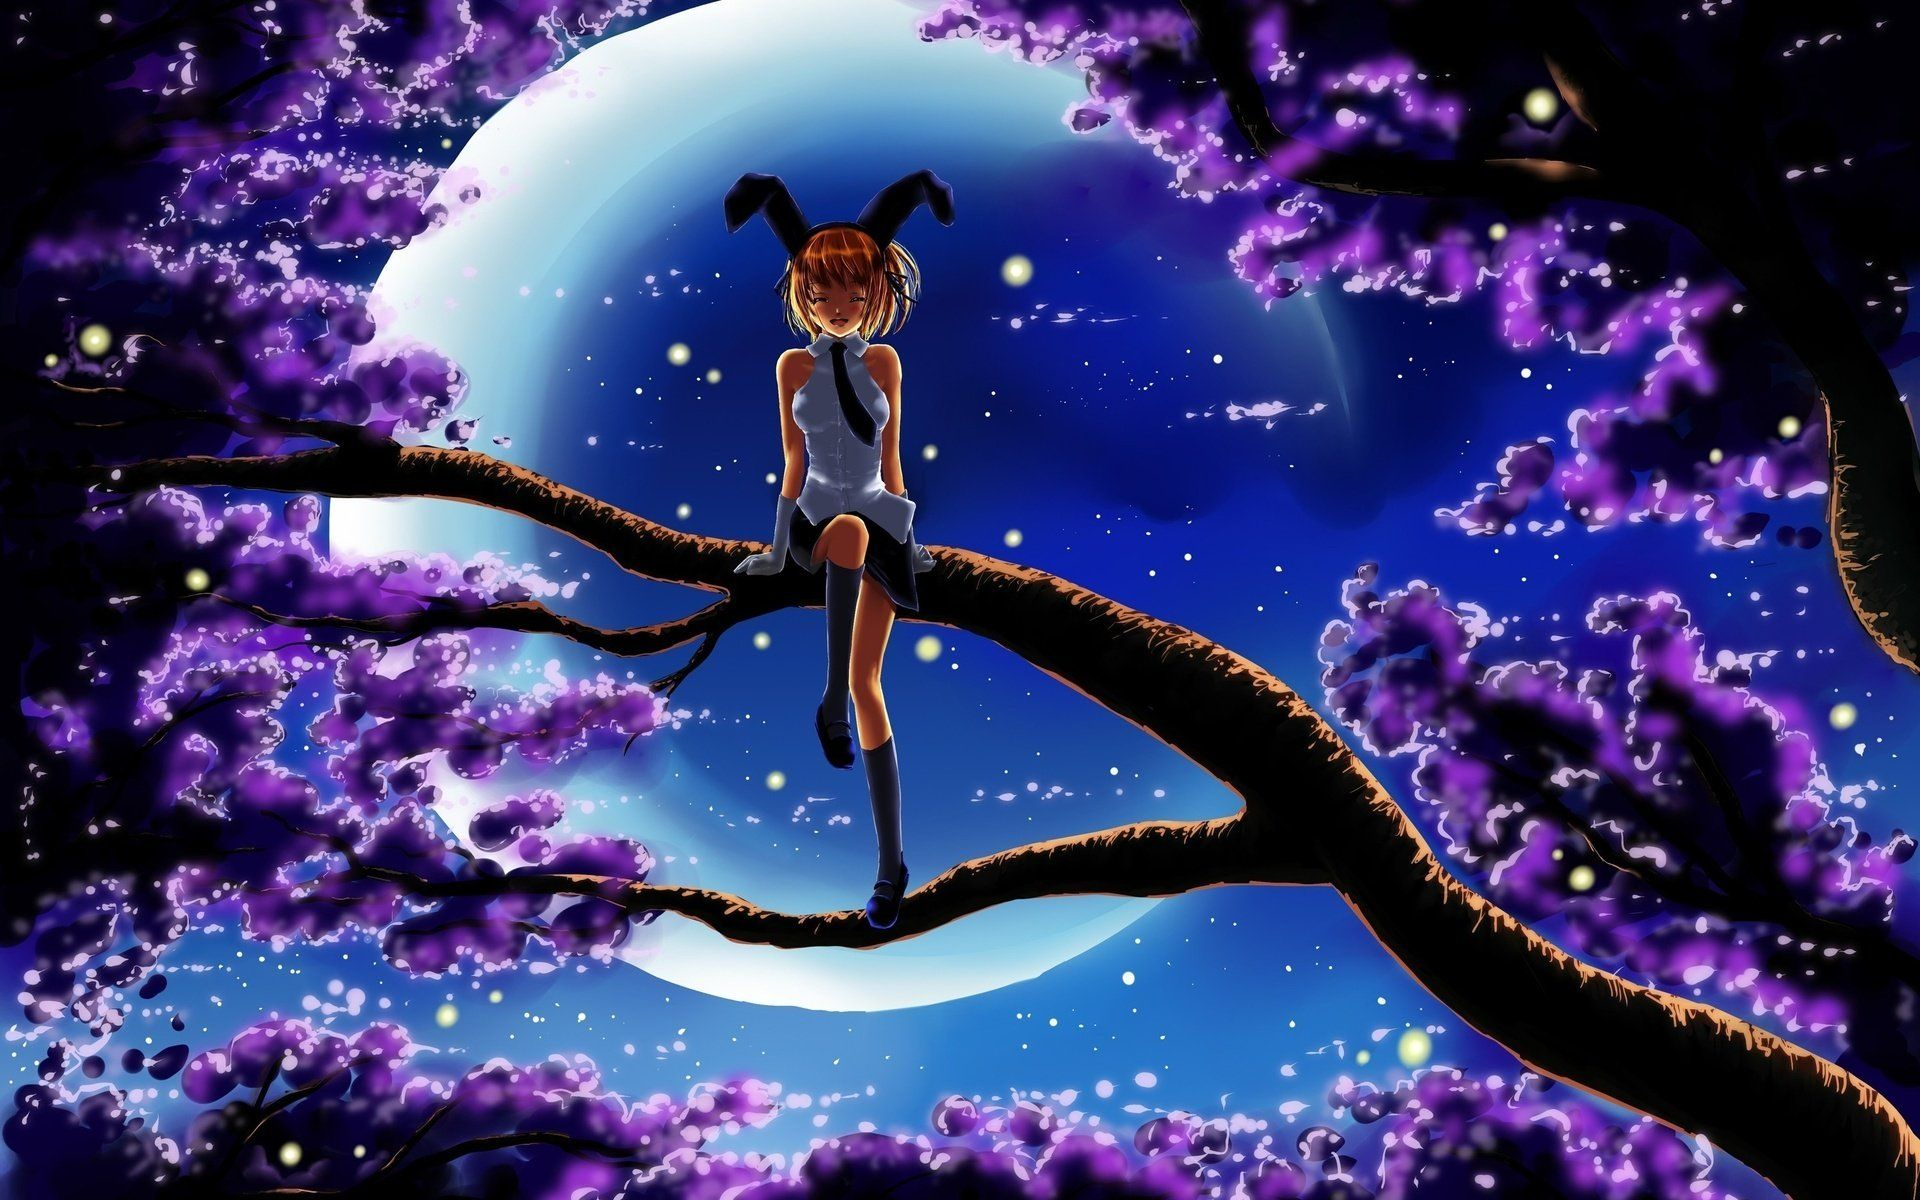 Wallpapers Anime Moon Wallpaper Girl 1920x1200